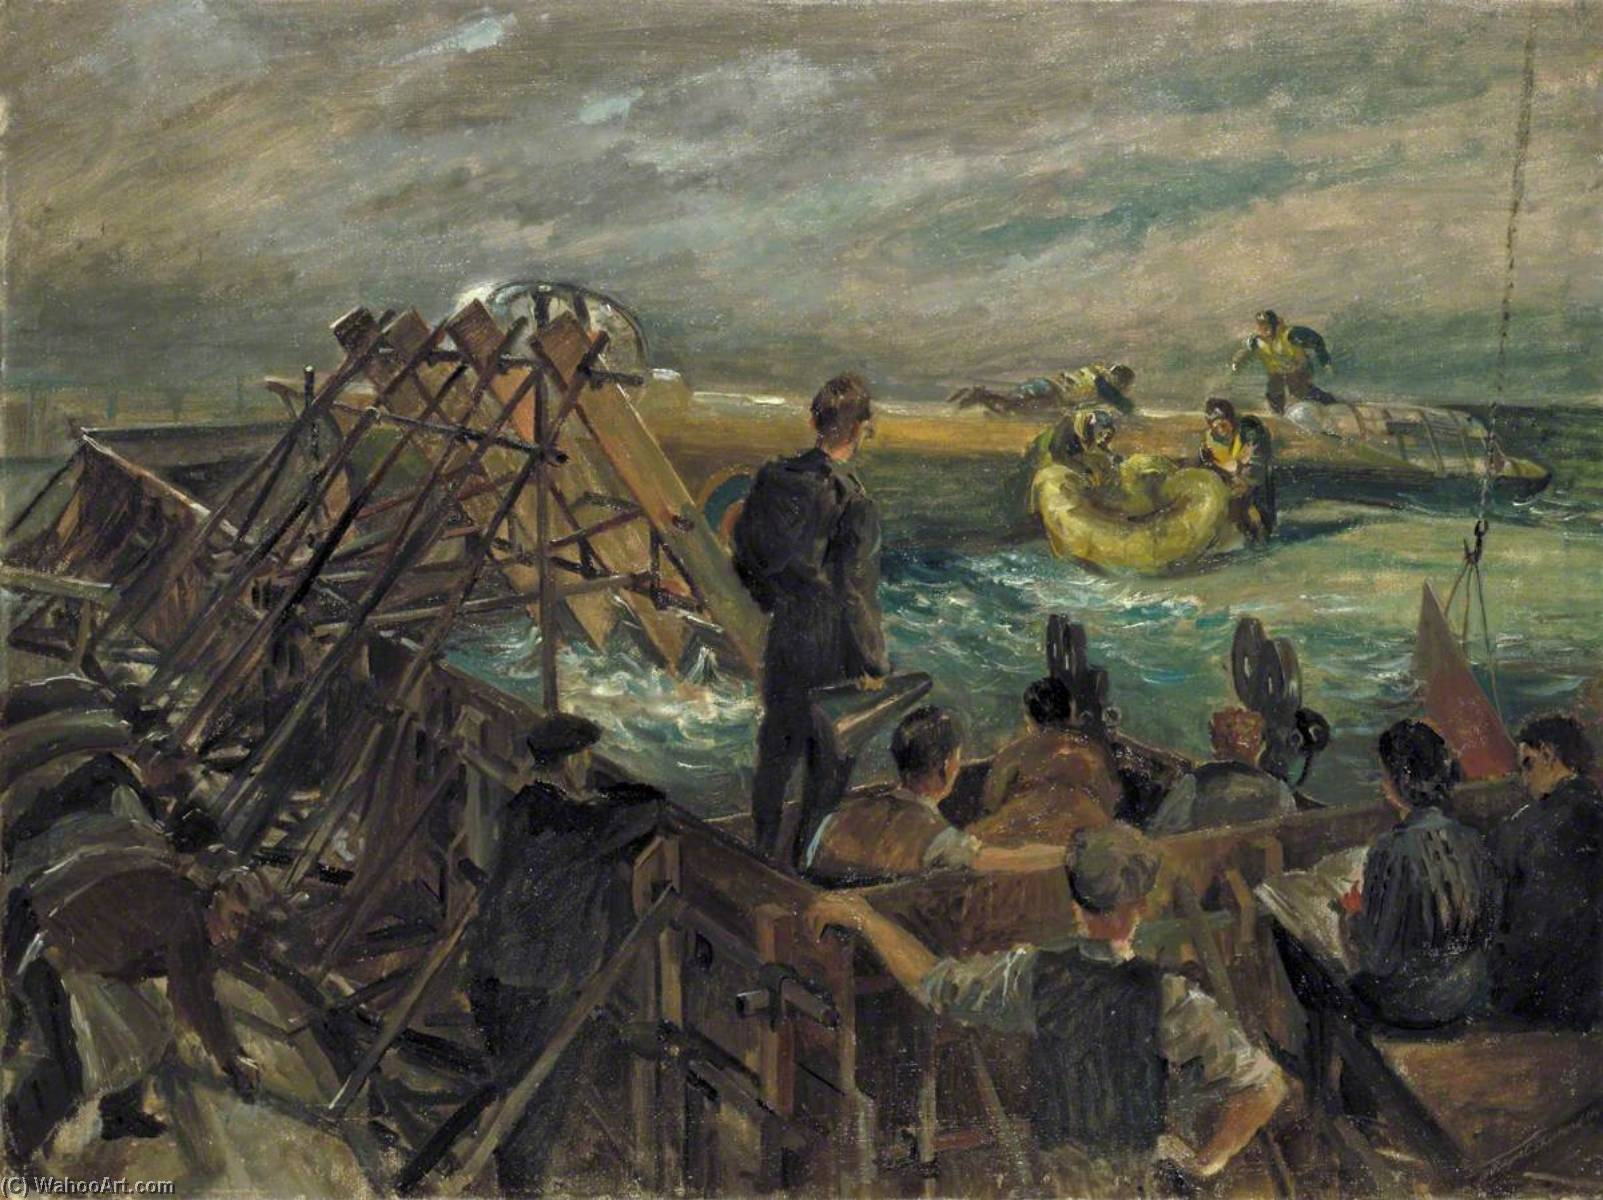 Filming a Practice Launching of a Rubber Dinghy in a Training Pond, 1944 by Rupert Shephard (1909-1992, United Kingdom) | Oil Painting | WahooArt.com